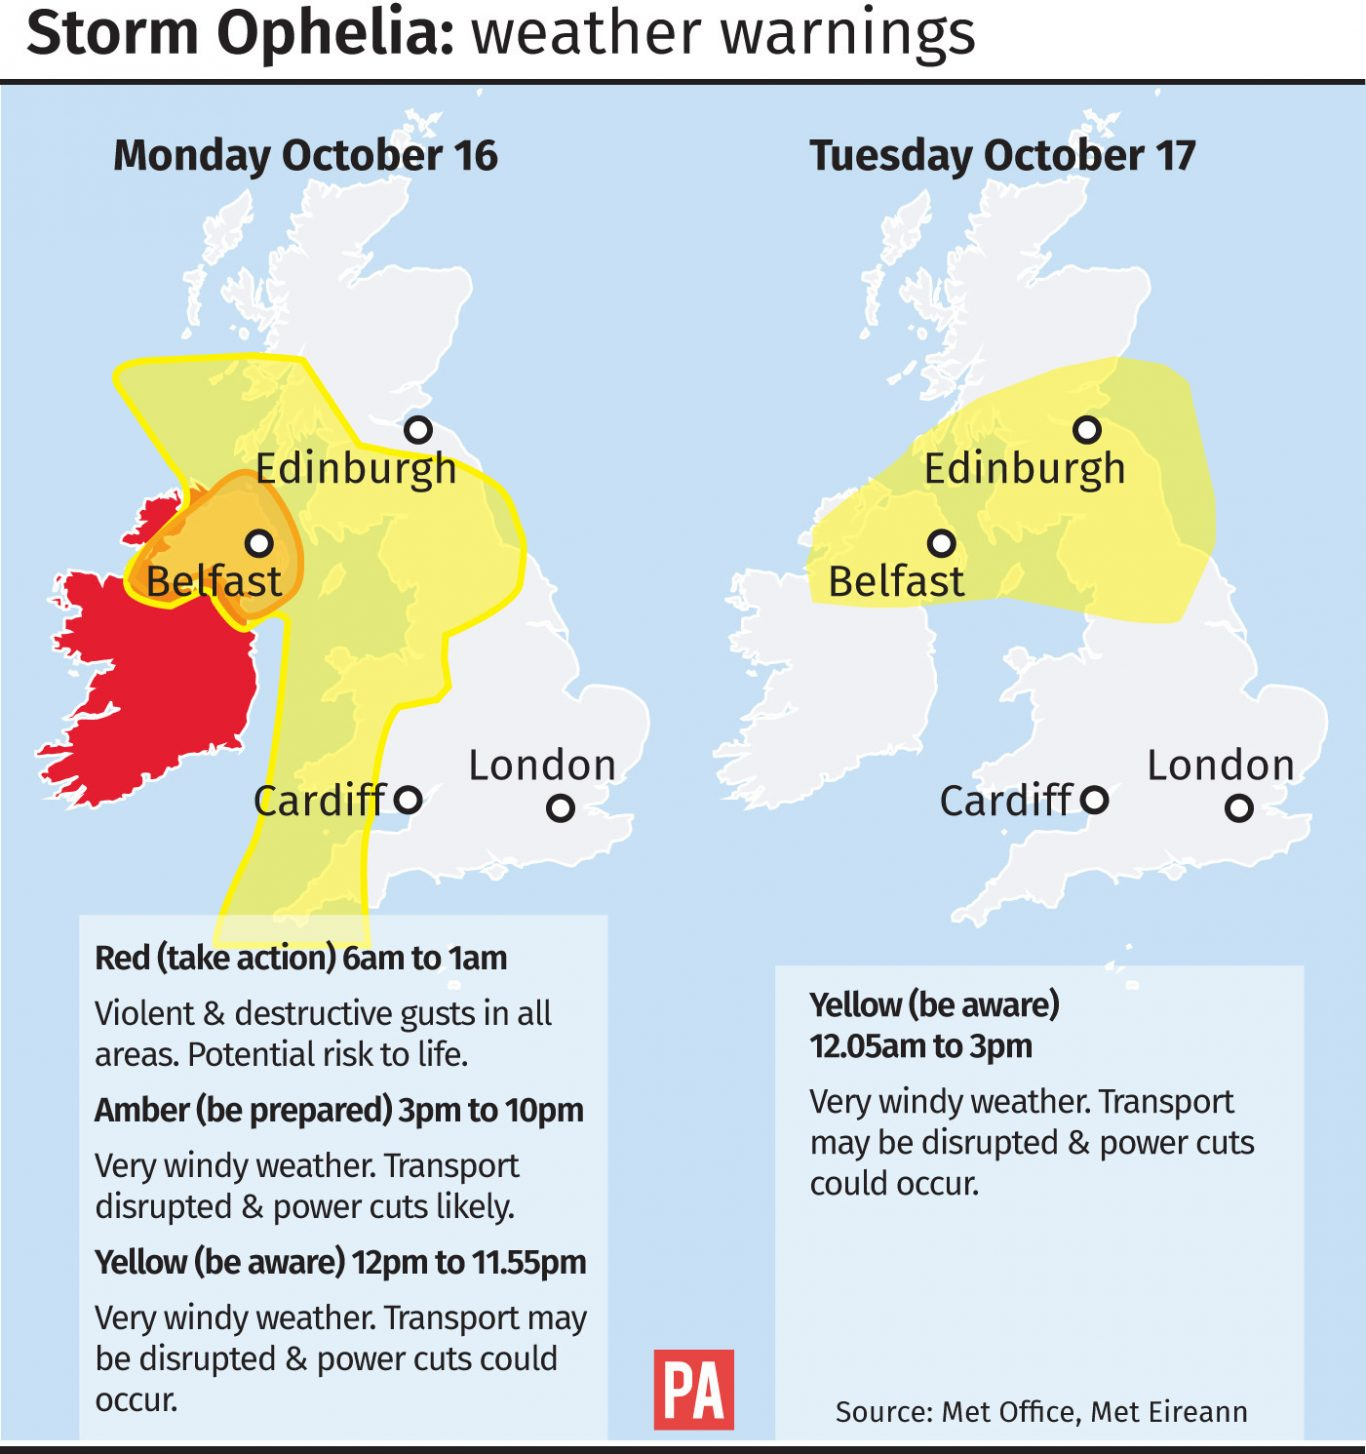 Storm Ophelia weather warnings